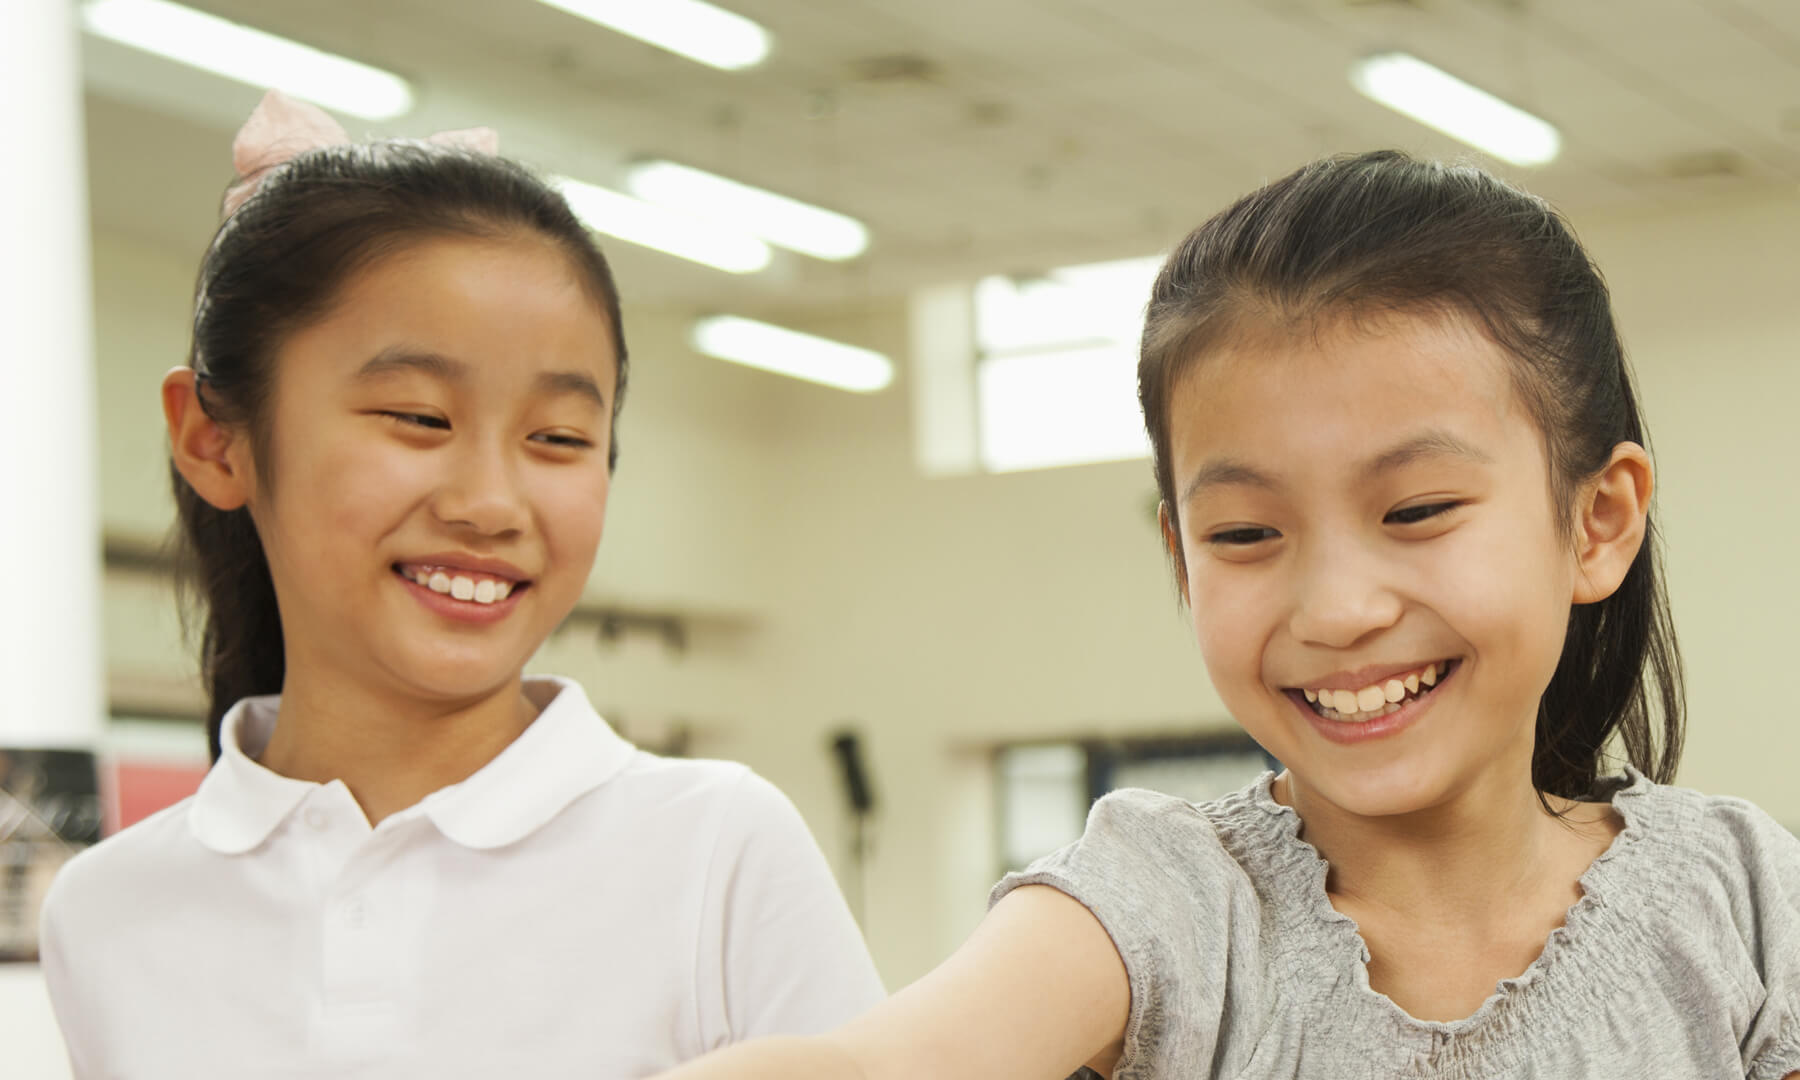 Two young Asian students smiling.